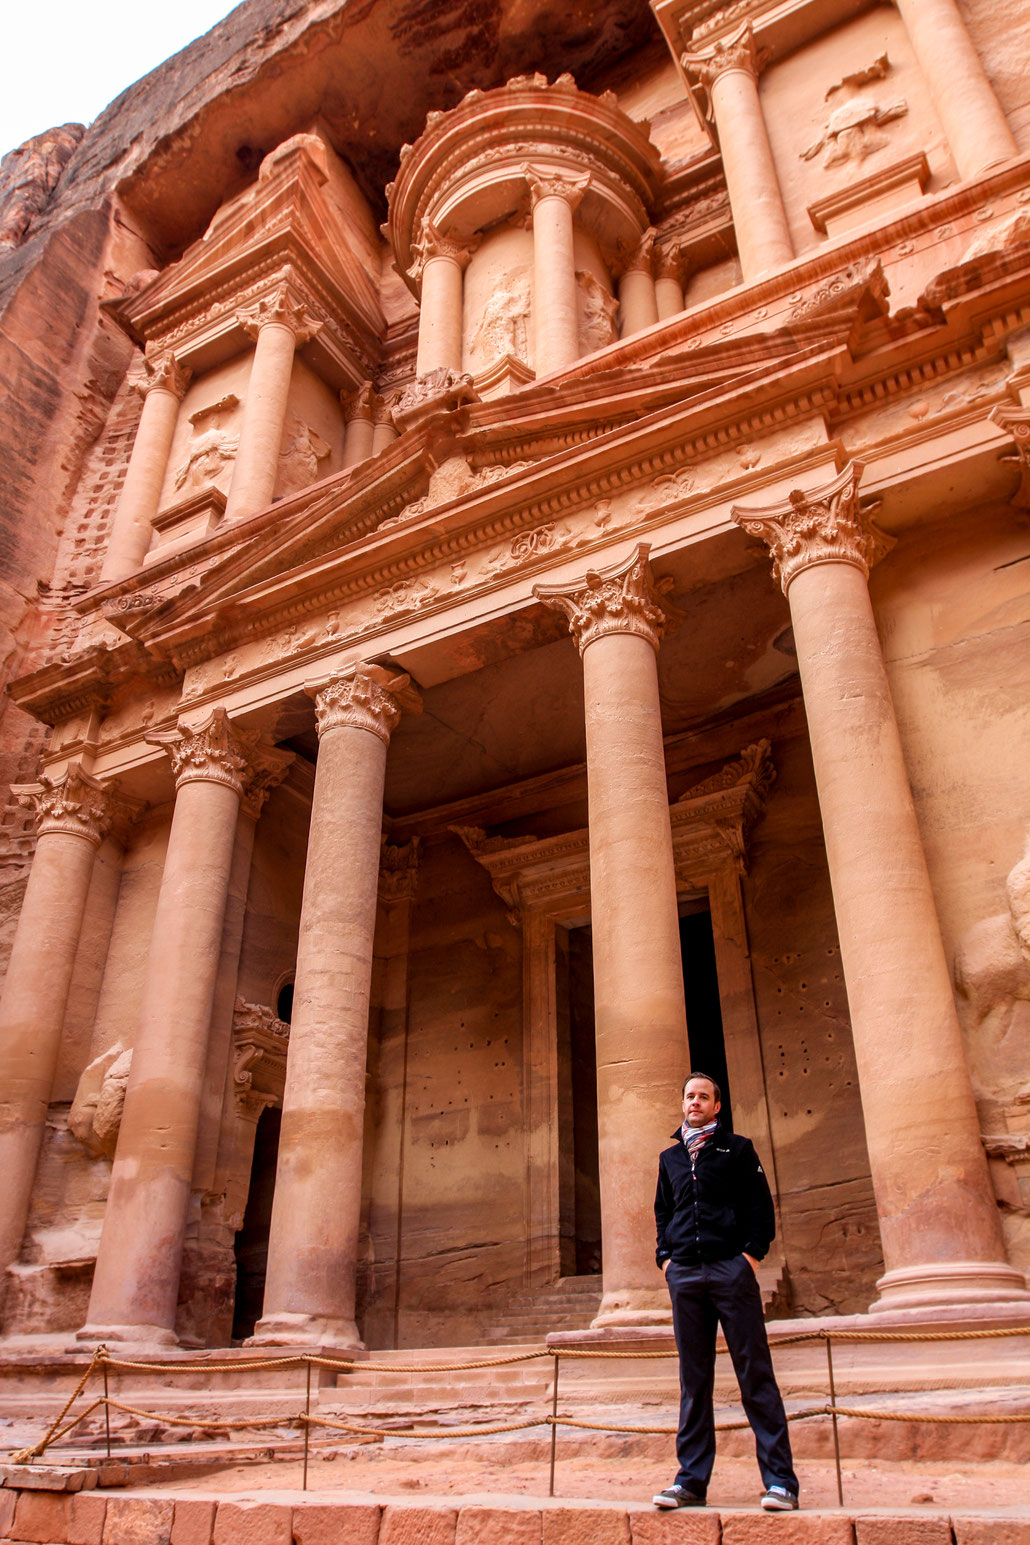 Me at the massive Khazne al-Firaun front in Petra